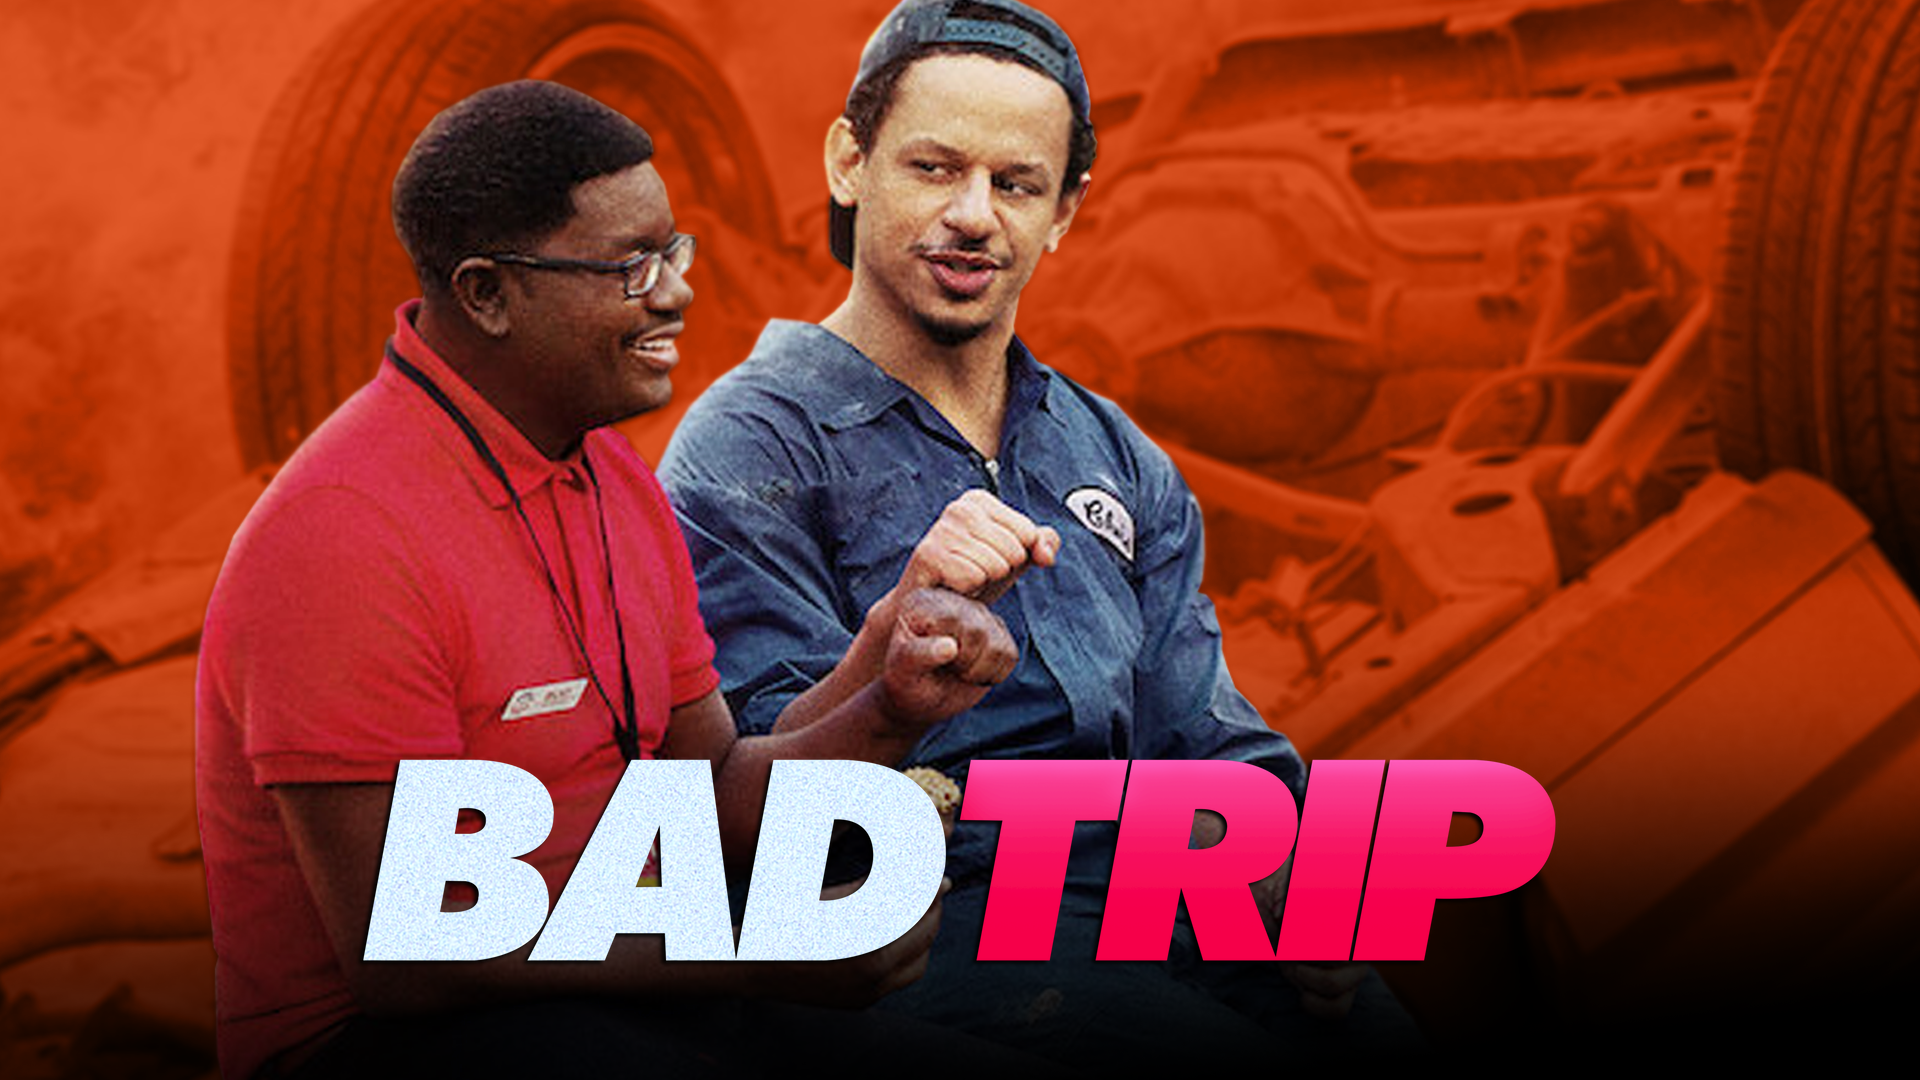 Bad Trip is peak Eric André pranks and gross-out humor